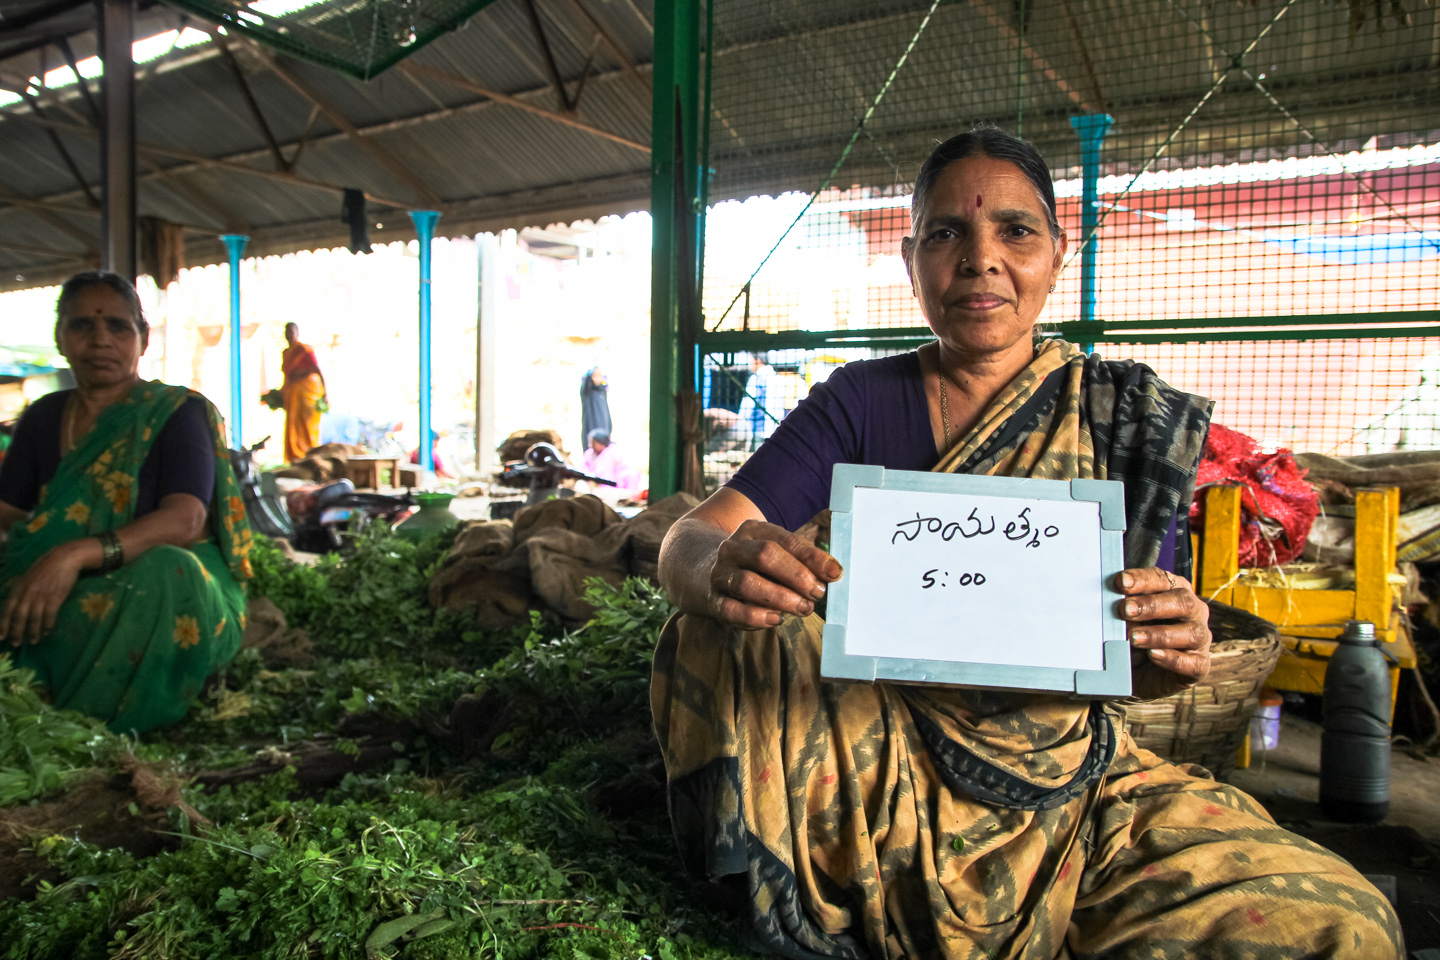 Lalita sells mint and cilantro at a vegetable market near Charminar, Hyderabad. Her two daughters live in the United States, and when they come back to visit, they join Lalita on her daily 5 pm chai break.